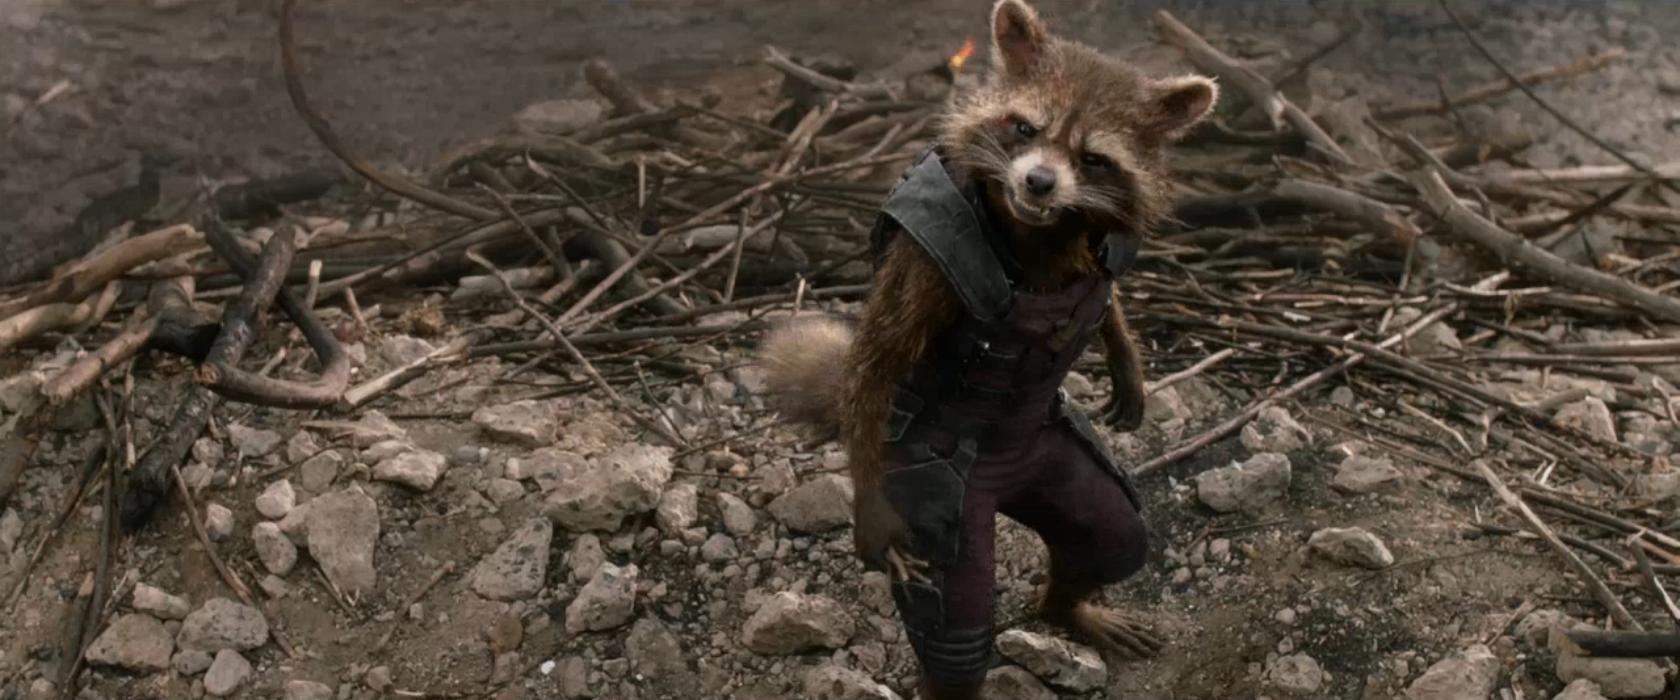 Rocket Raccoon From Marvels Guardians Of The Galaxy Wallpaper